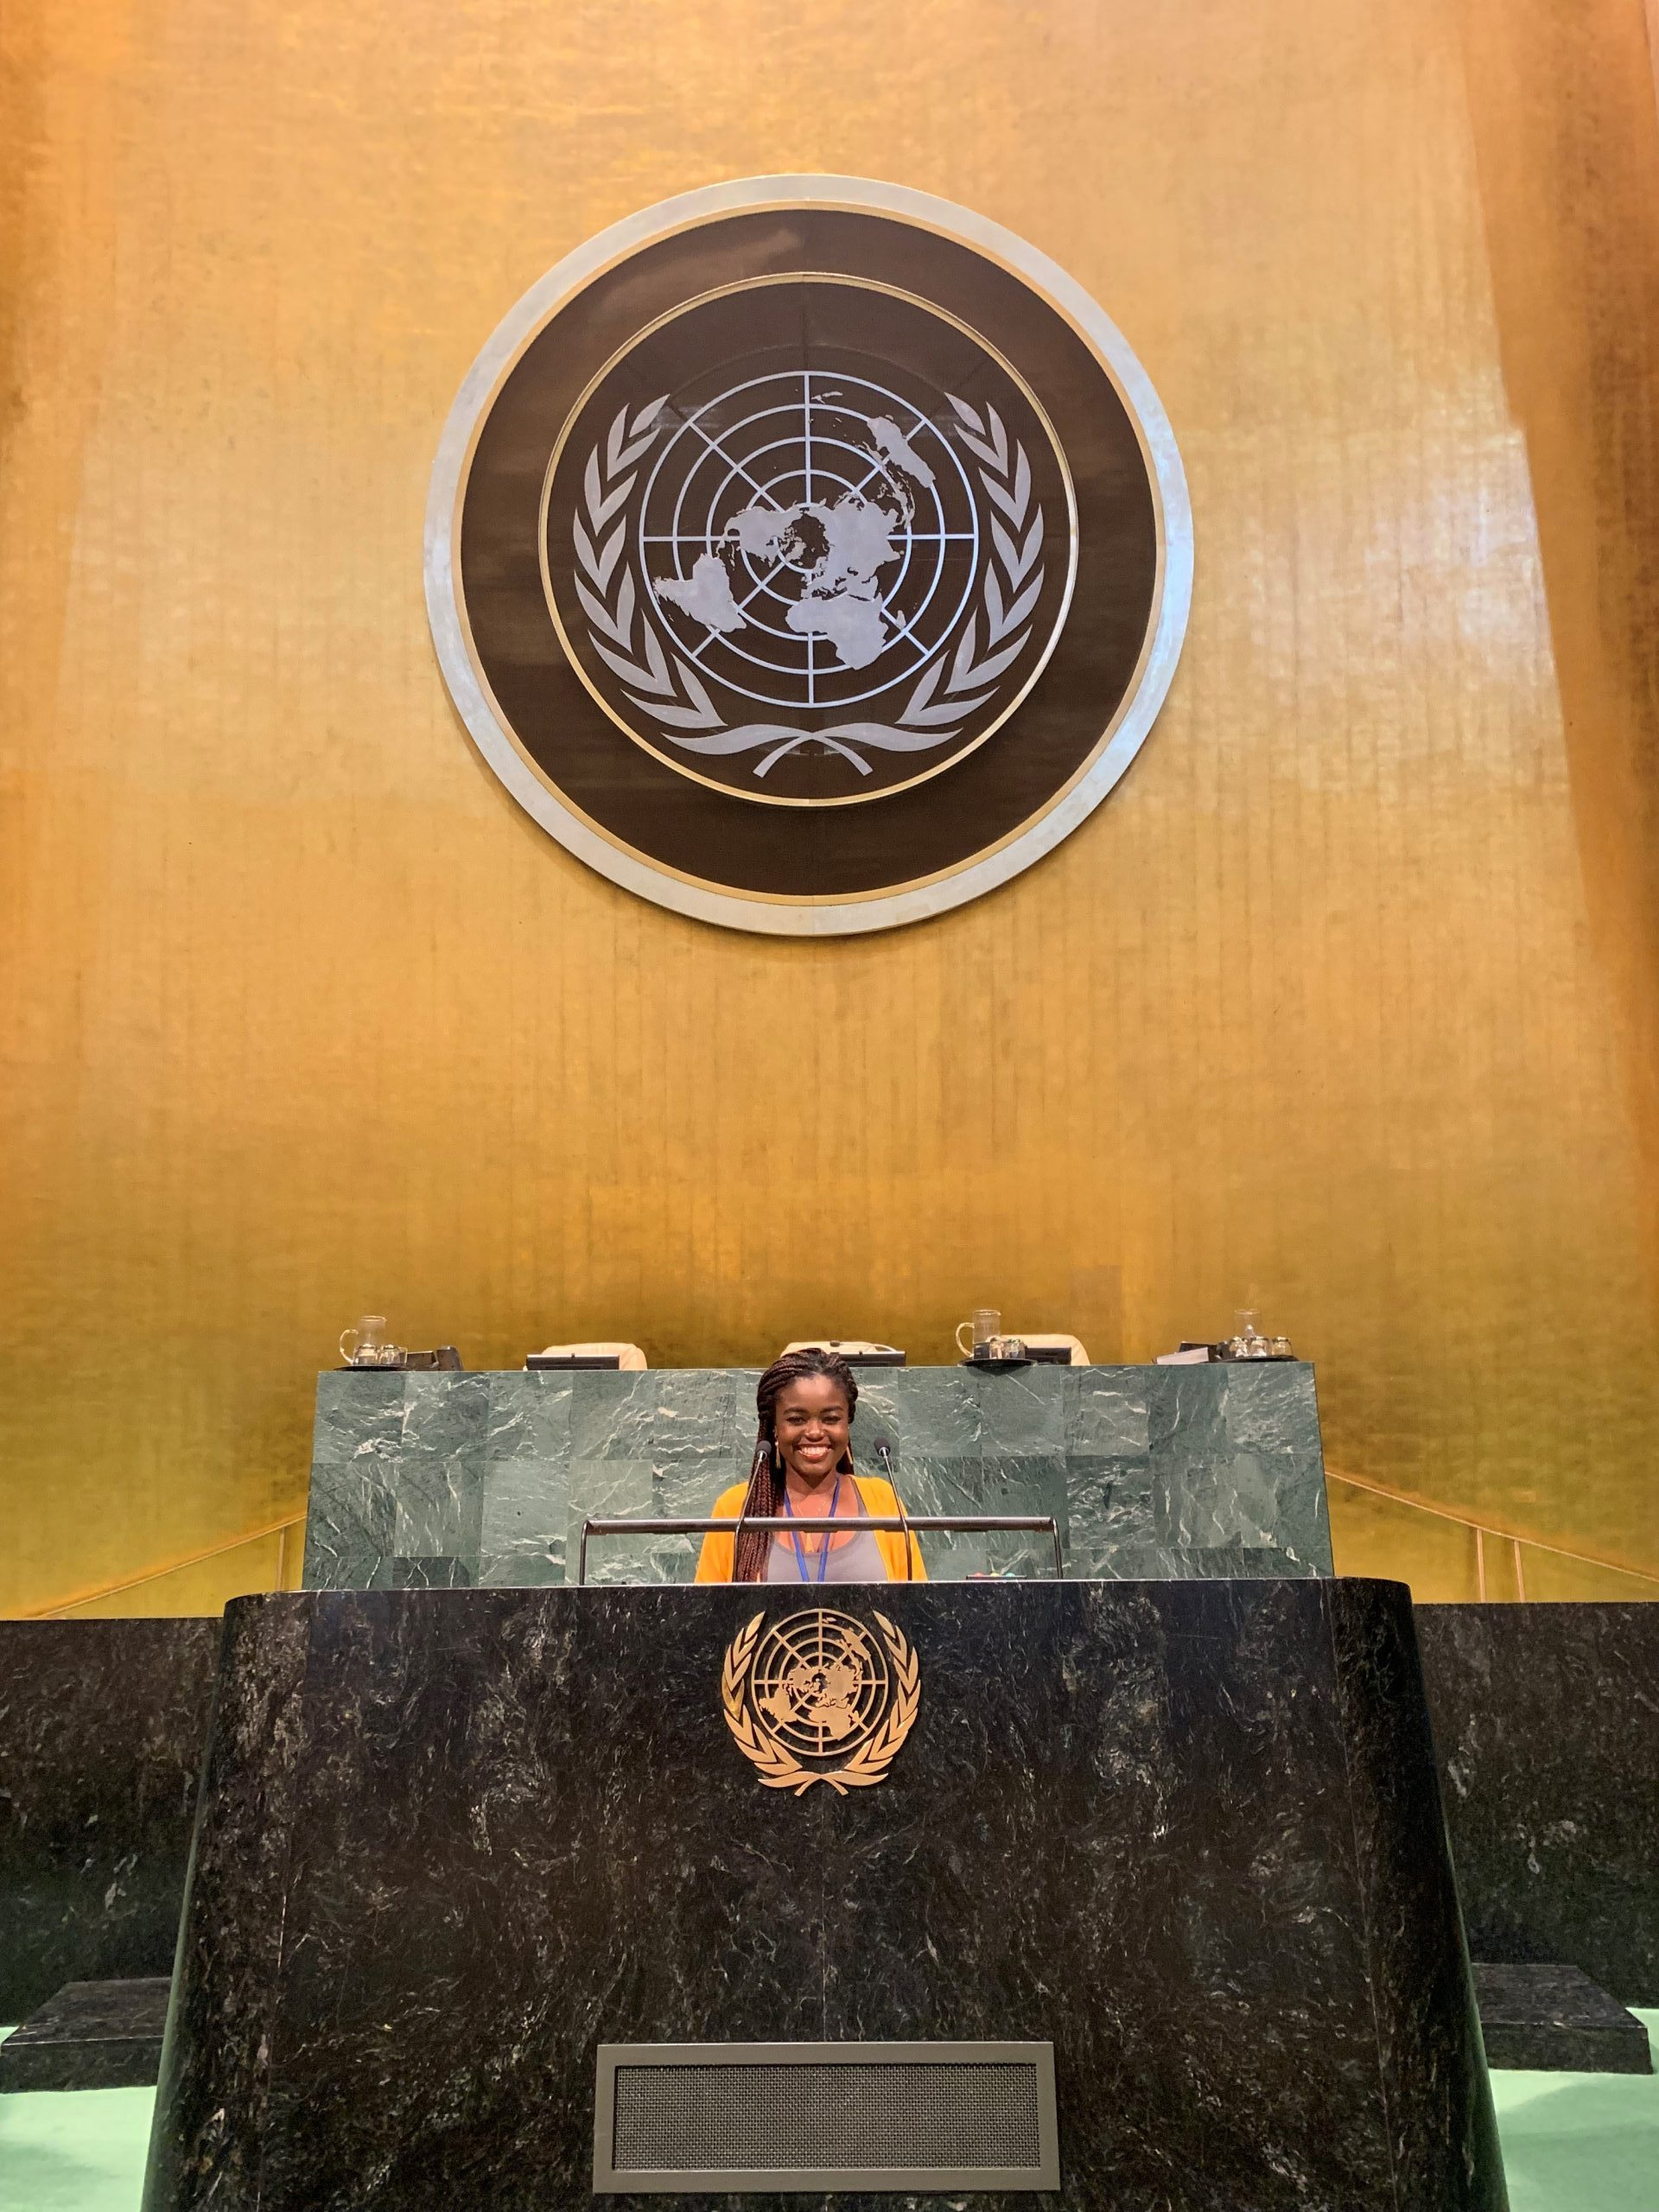 Princess at the UN